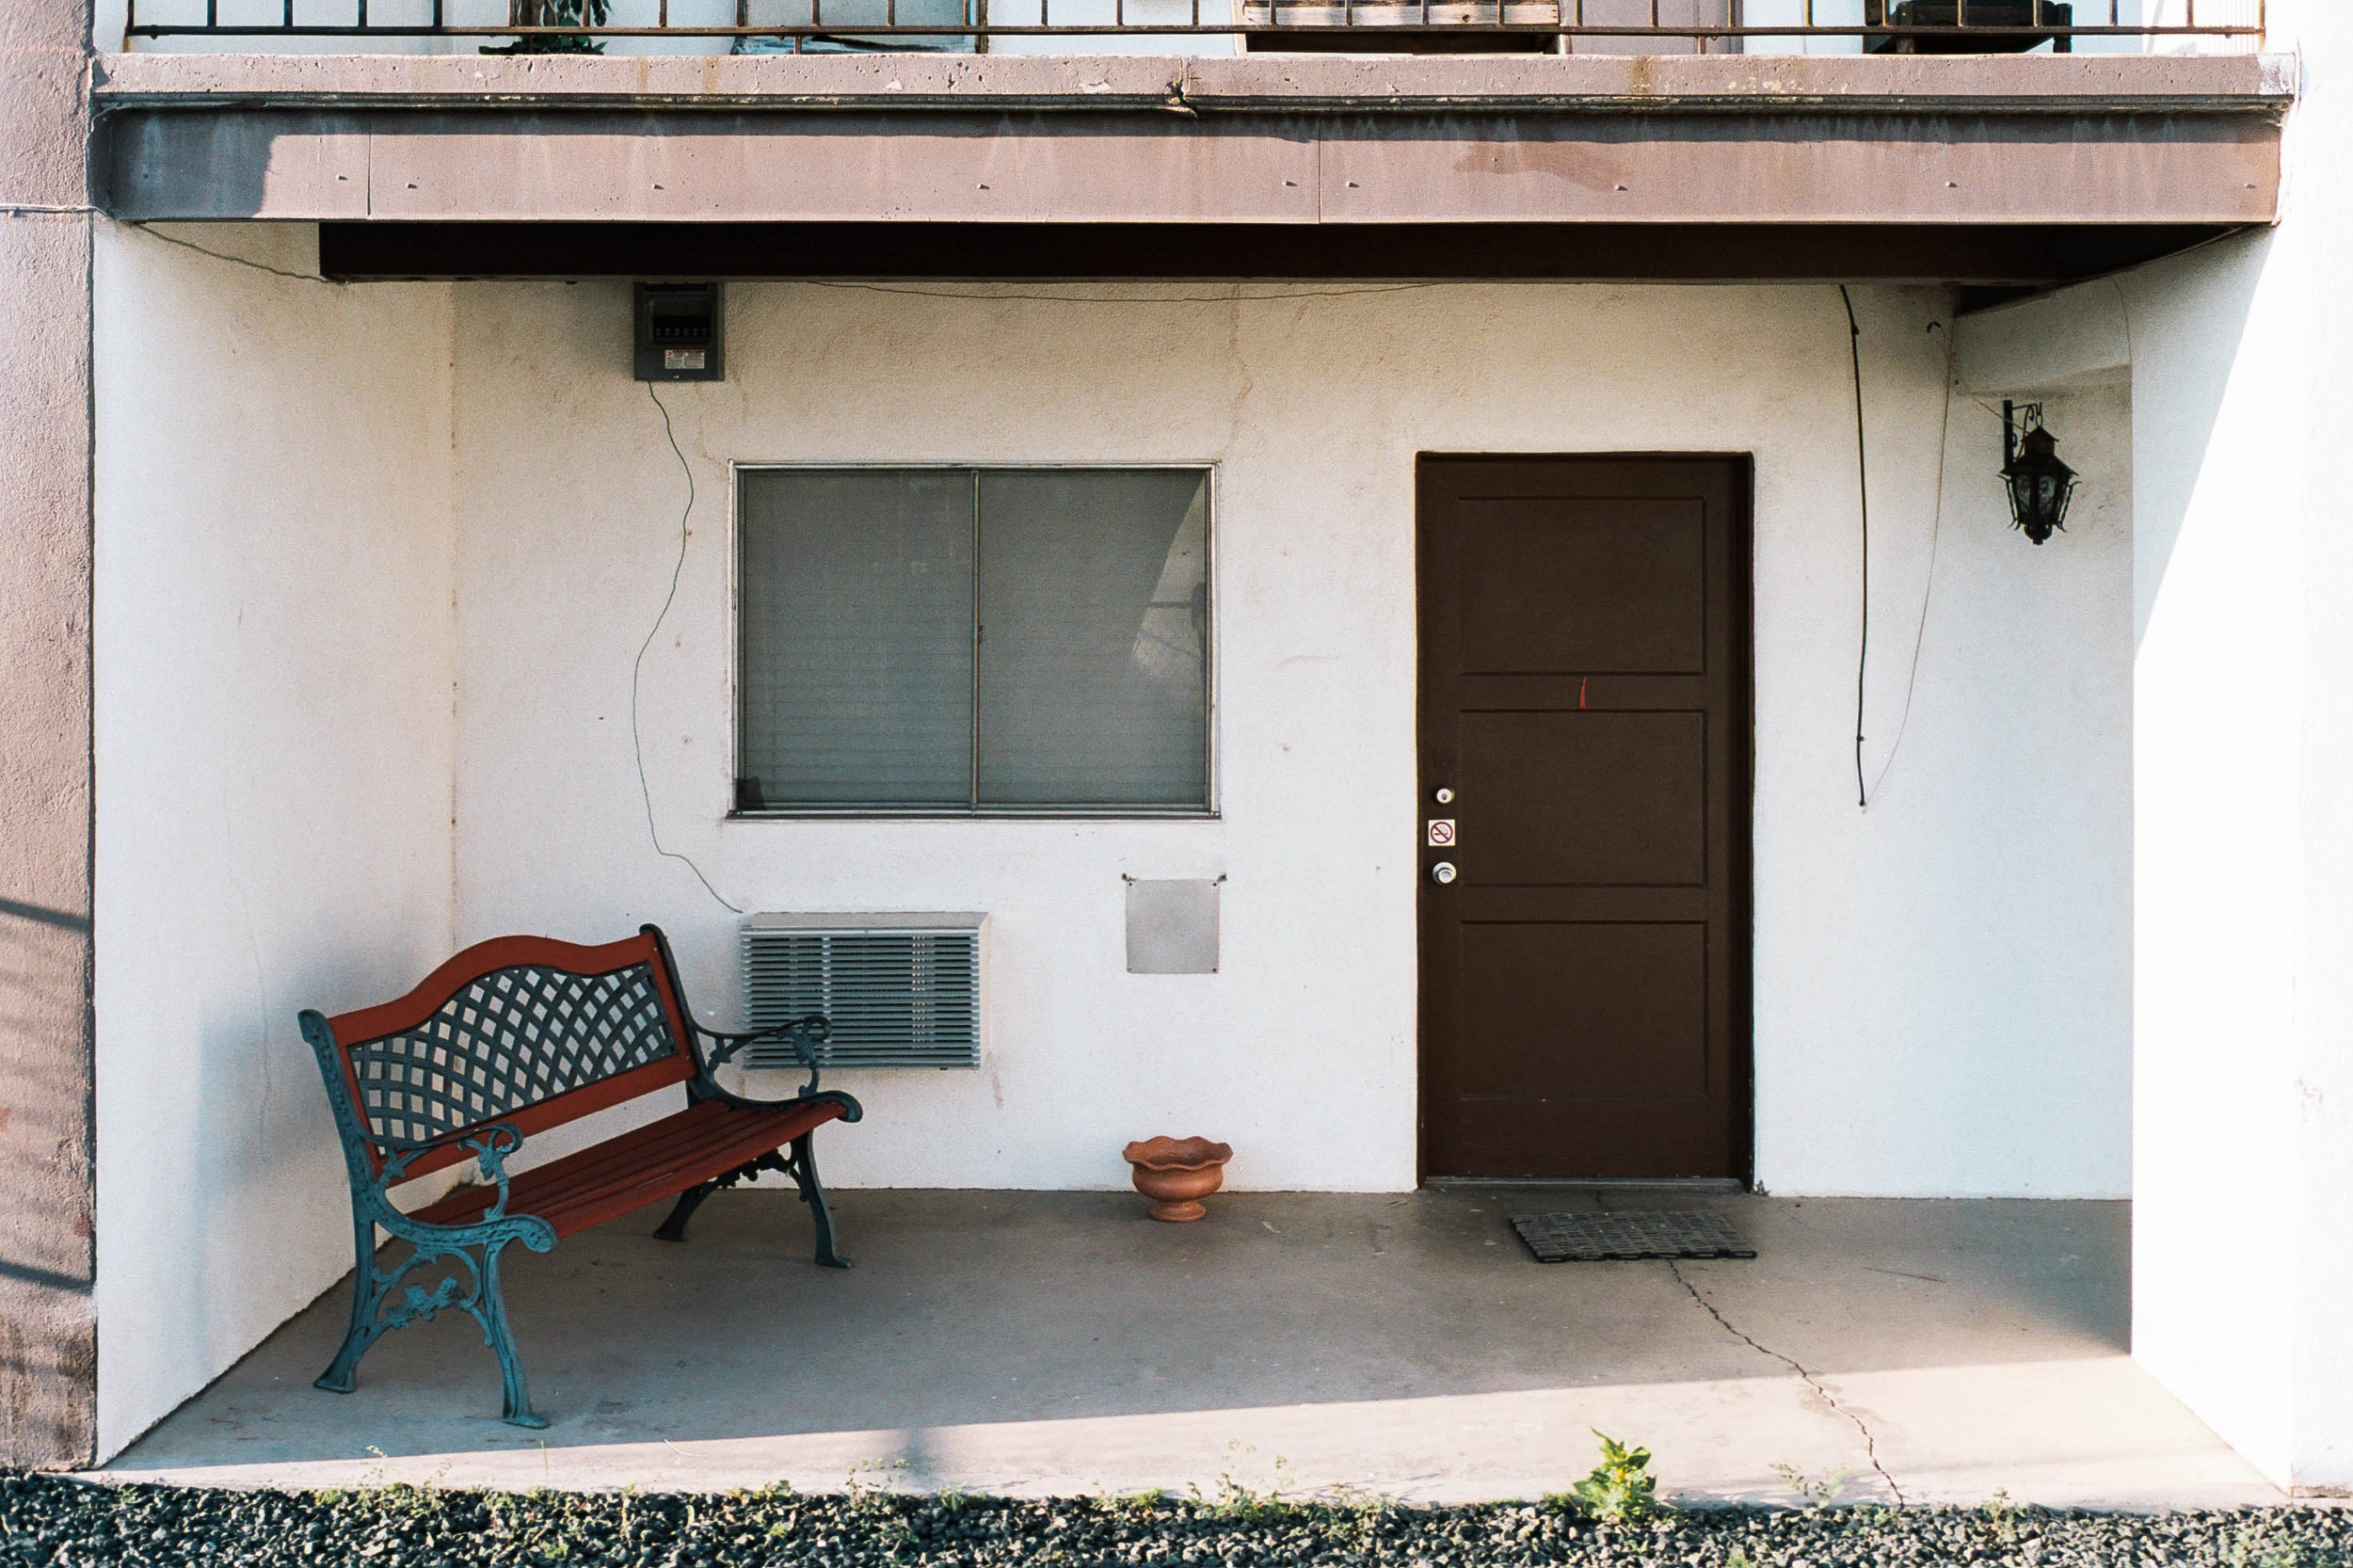 nate-matos-arizona-motel-1.jpg